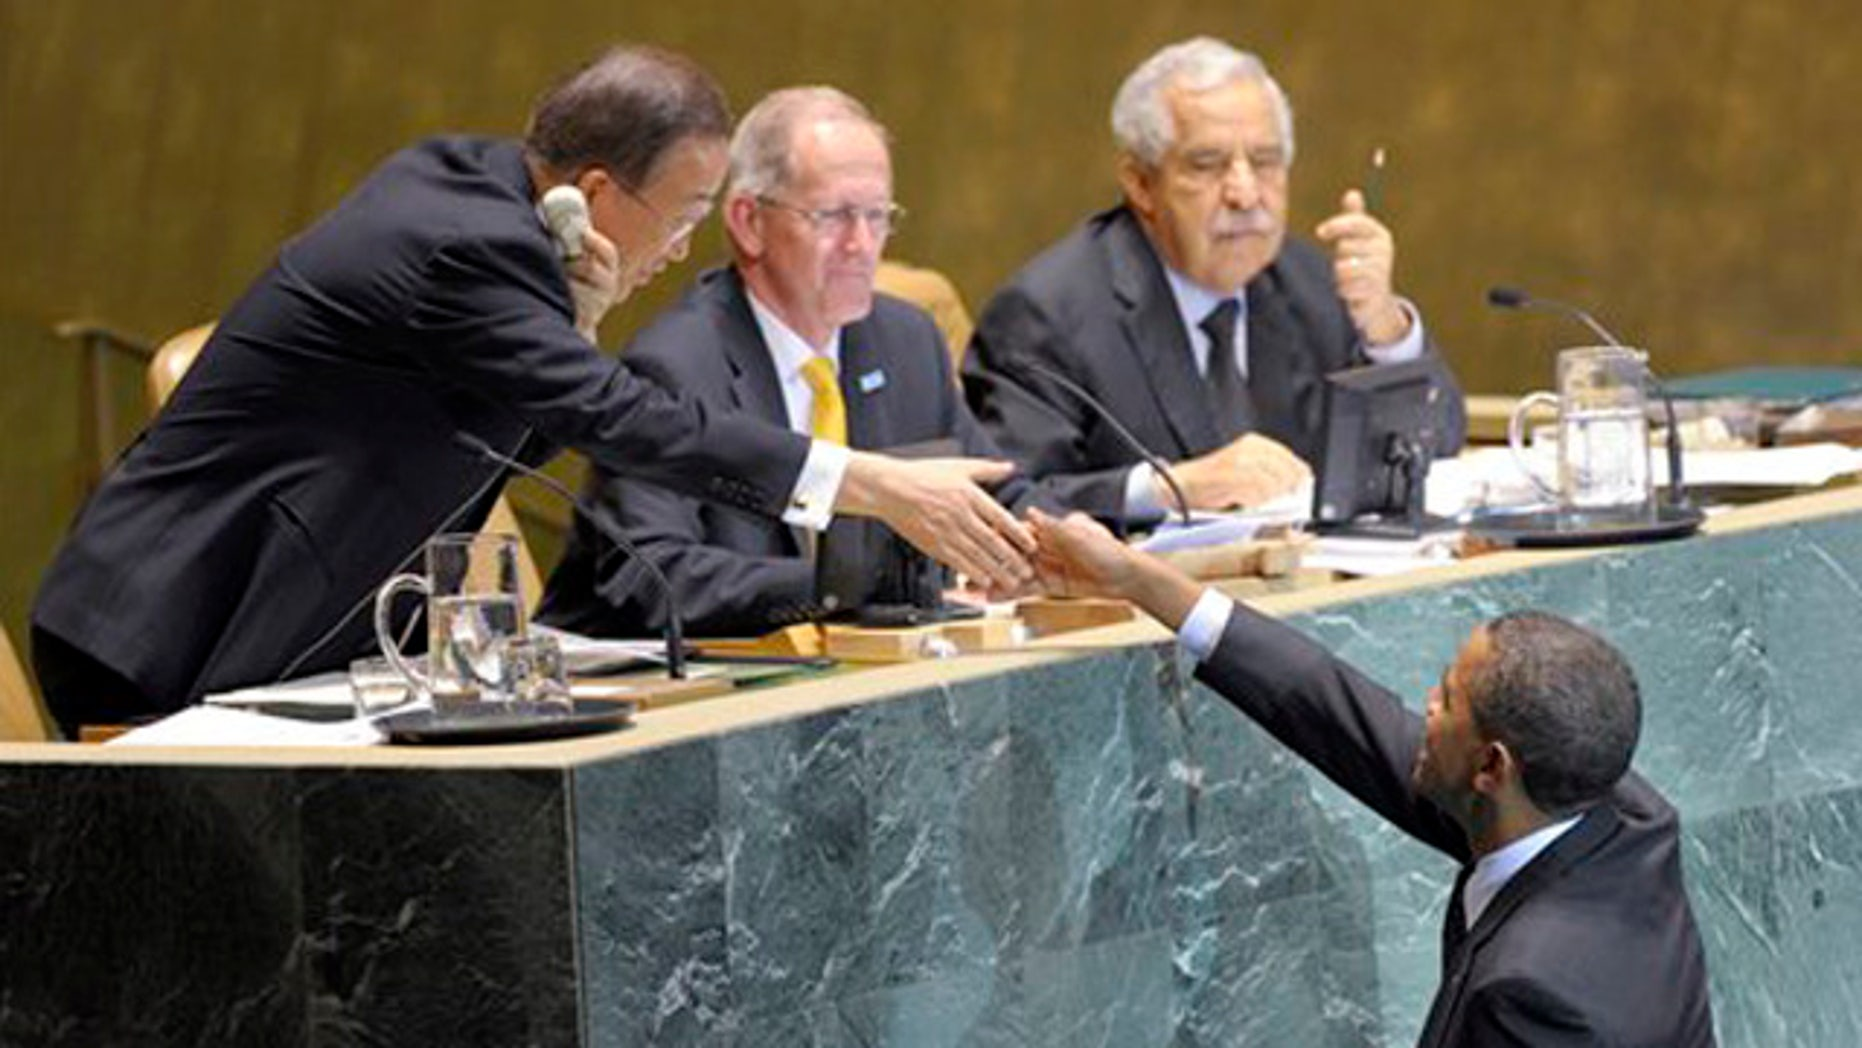 Sept.  22, 2010: President Barack Obama reaches to shake the hand of UN Secretary General Ban-Ki Moon, left, before he delivers remarks at the Millennium Development Goals Conference at the United Nations.